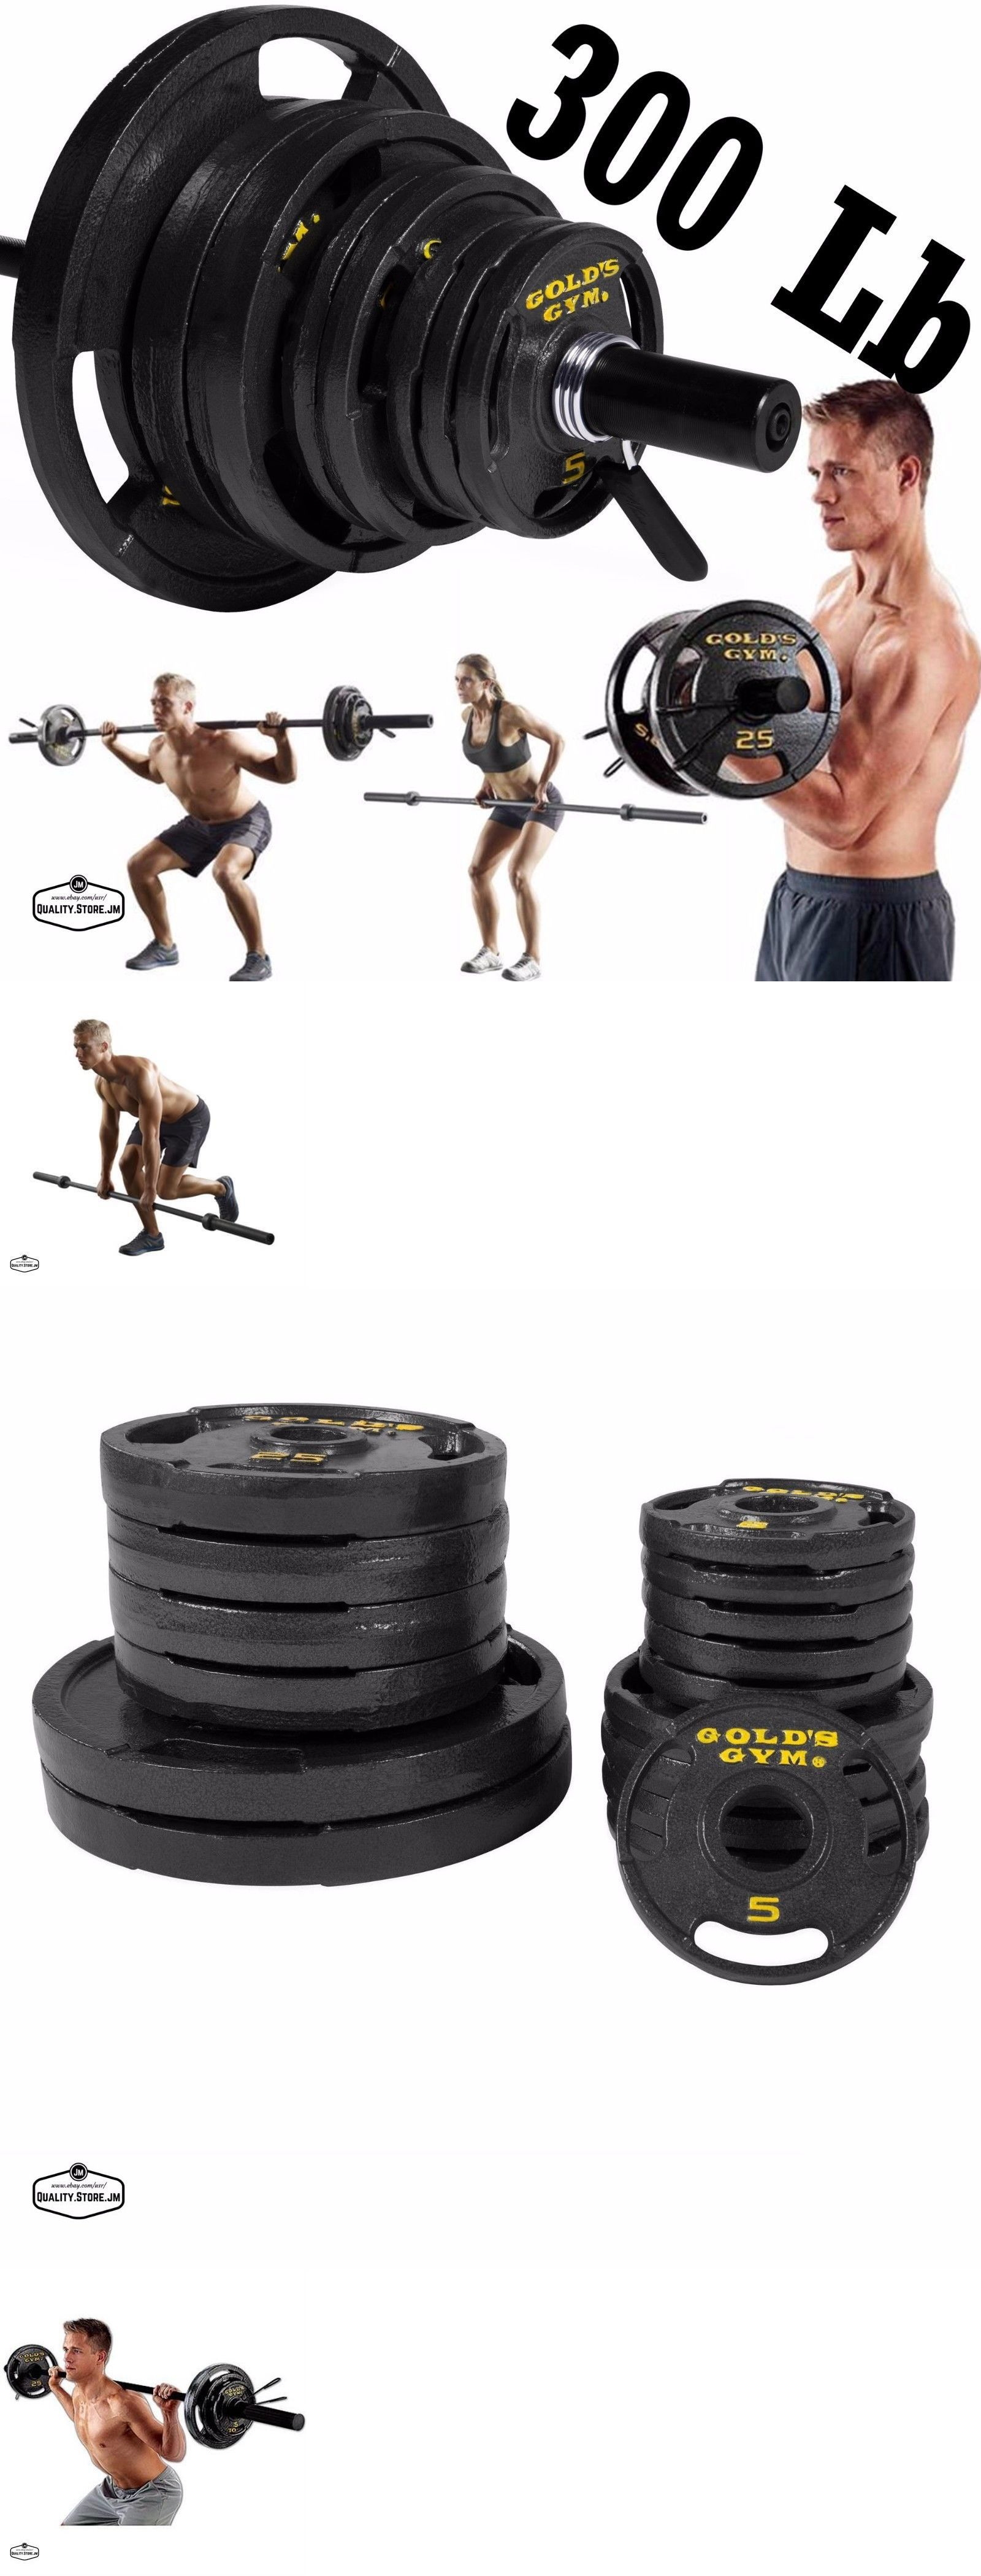 Weight Sets 179818 300 Lb Olympic Set 7 Foot Bar With Plates Lifting Equipment